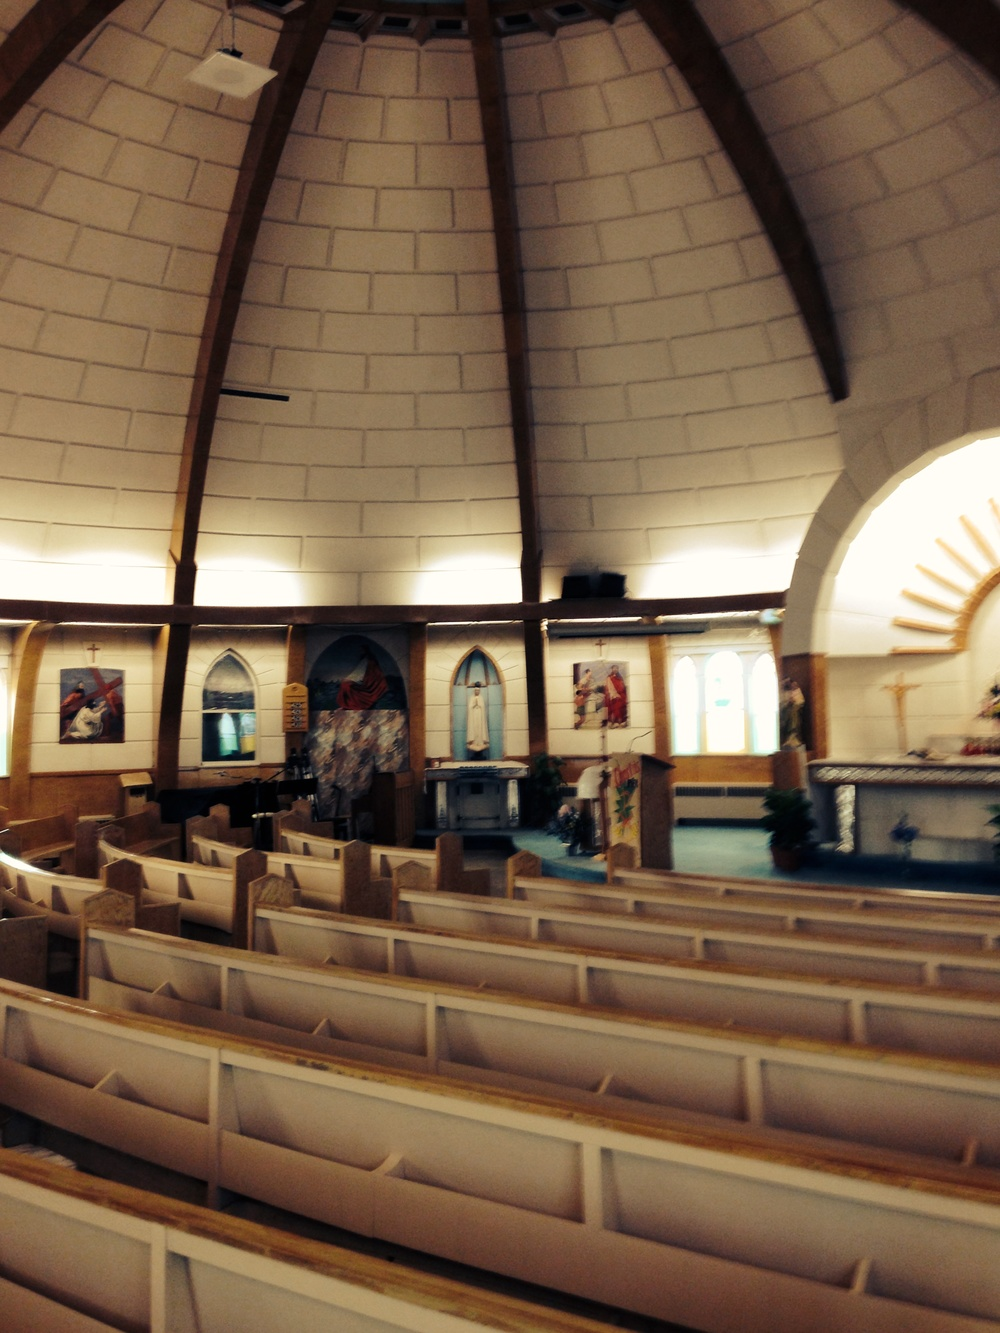 Inside the Igloo Church